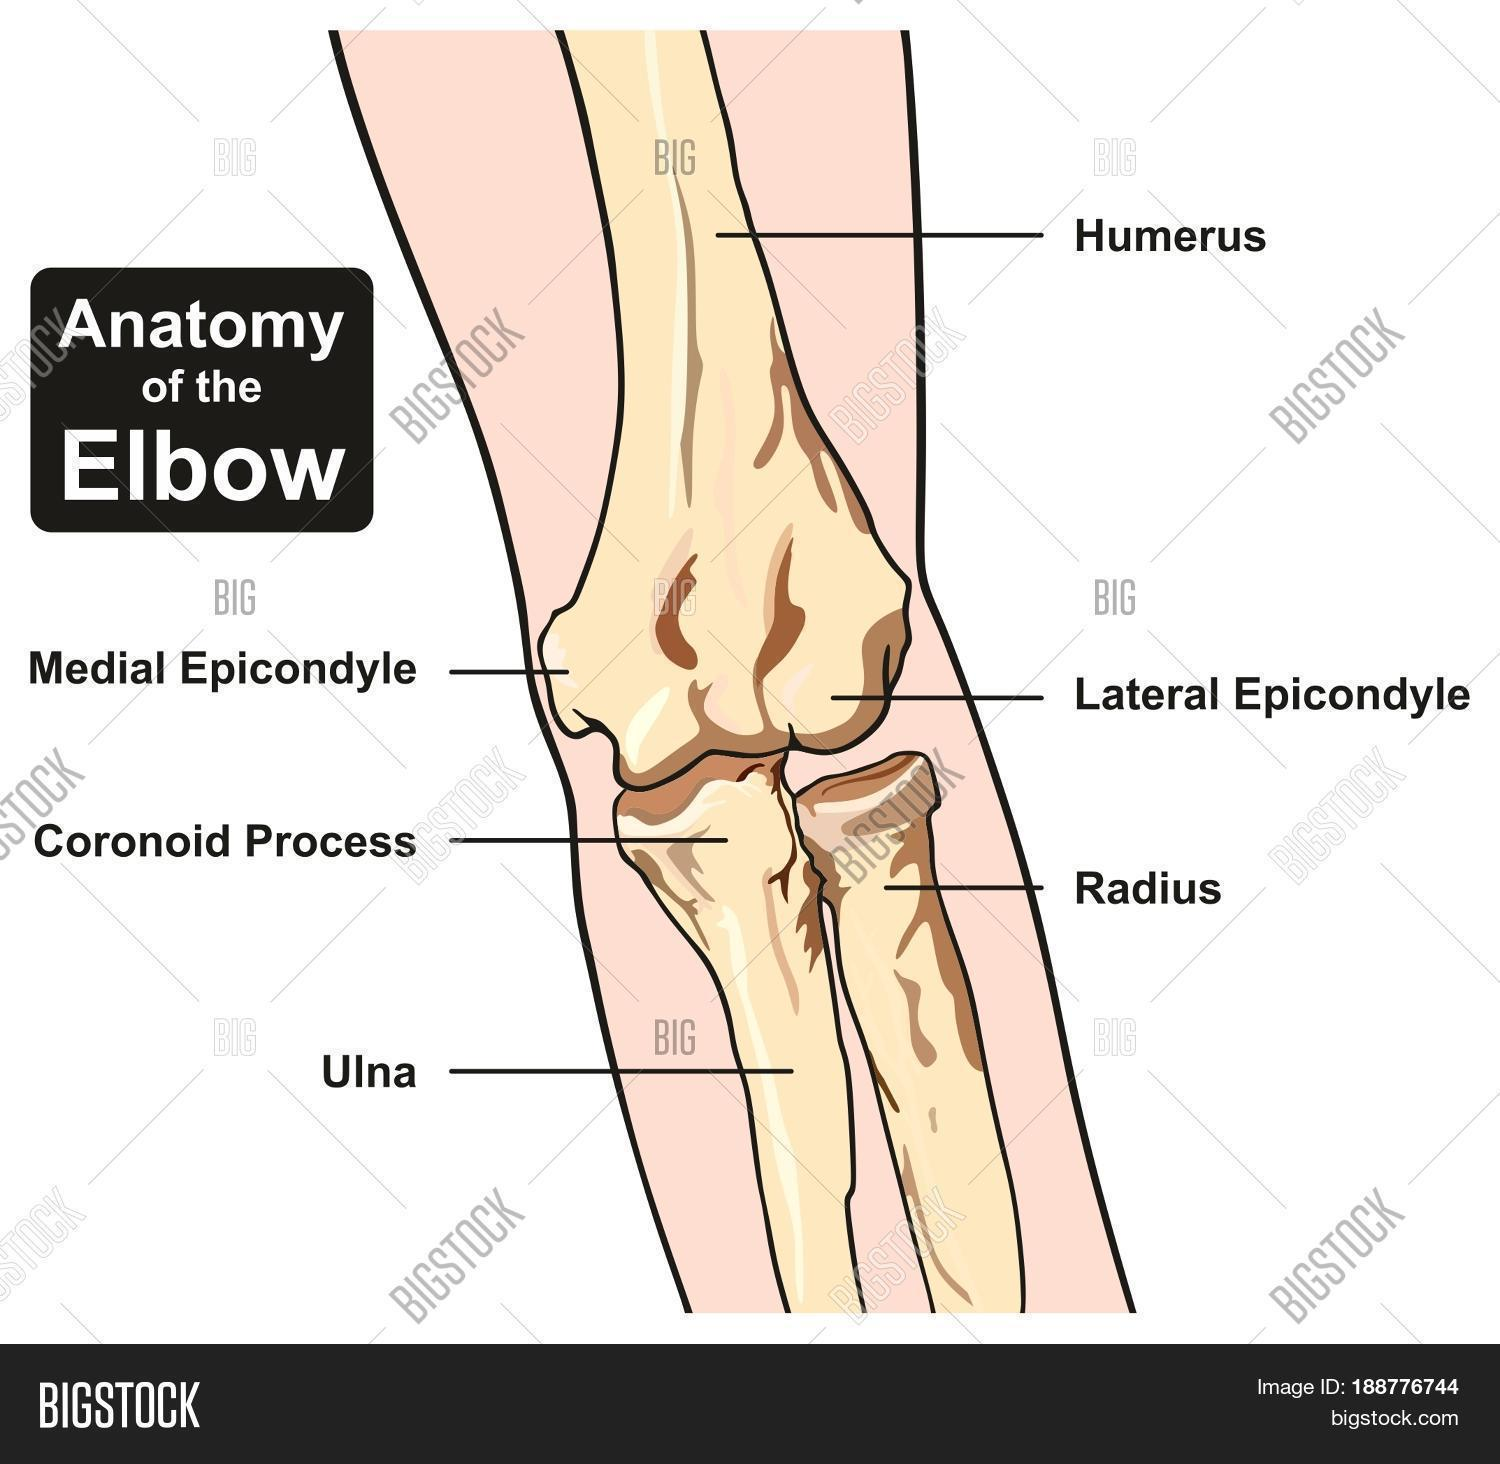 Anatomy Elbow Joint Image & Photo (Free Trial) | Bigstock